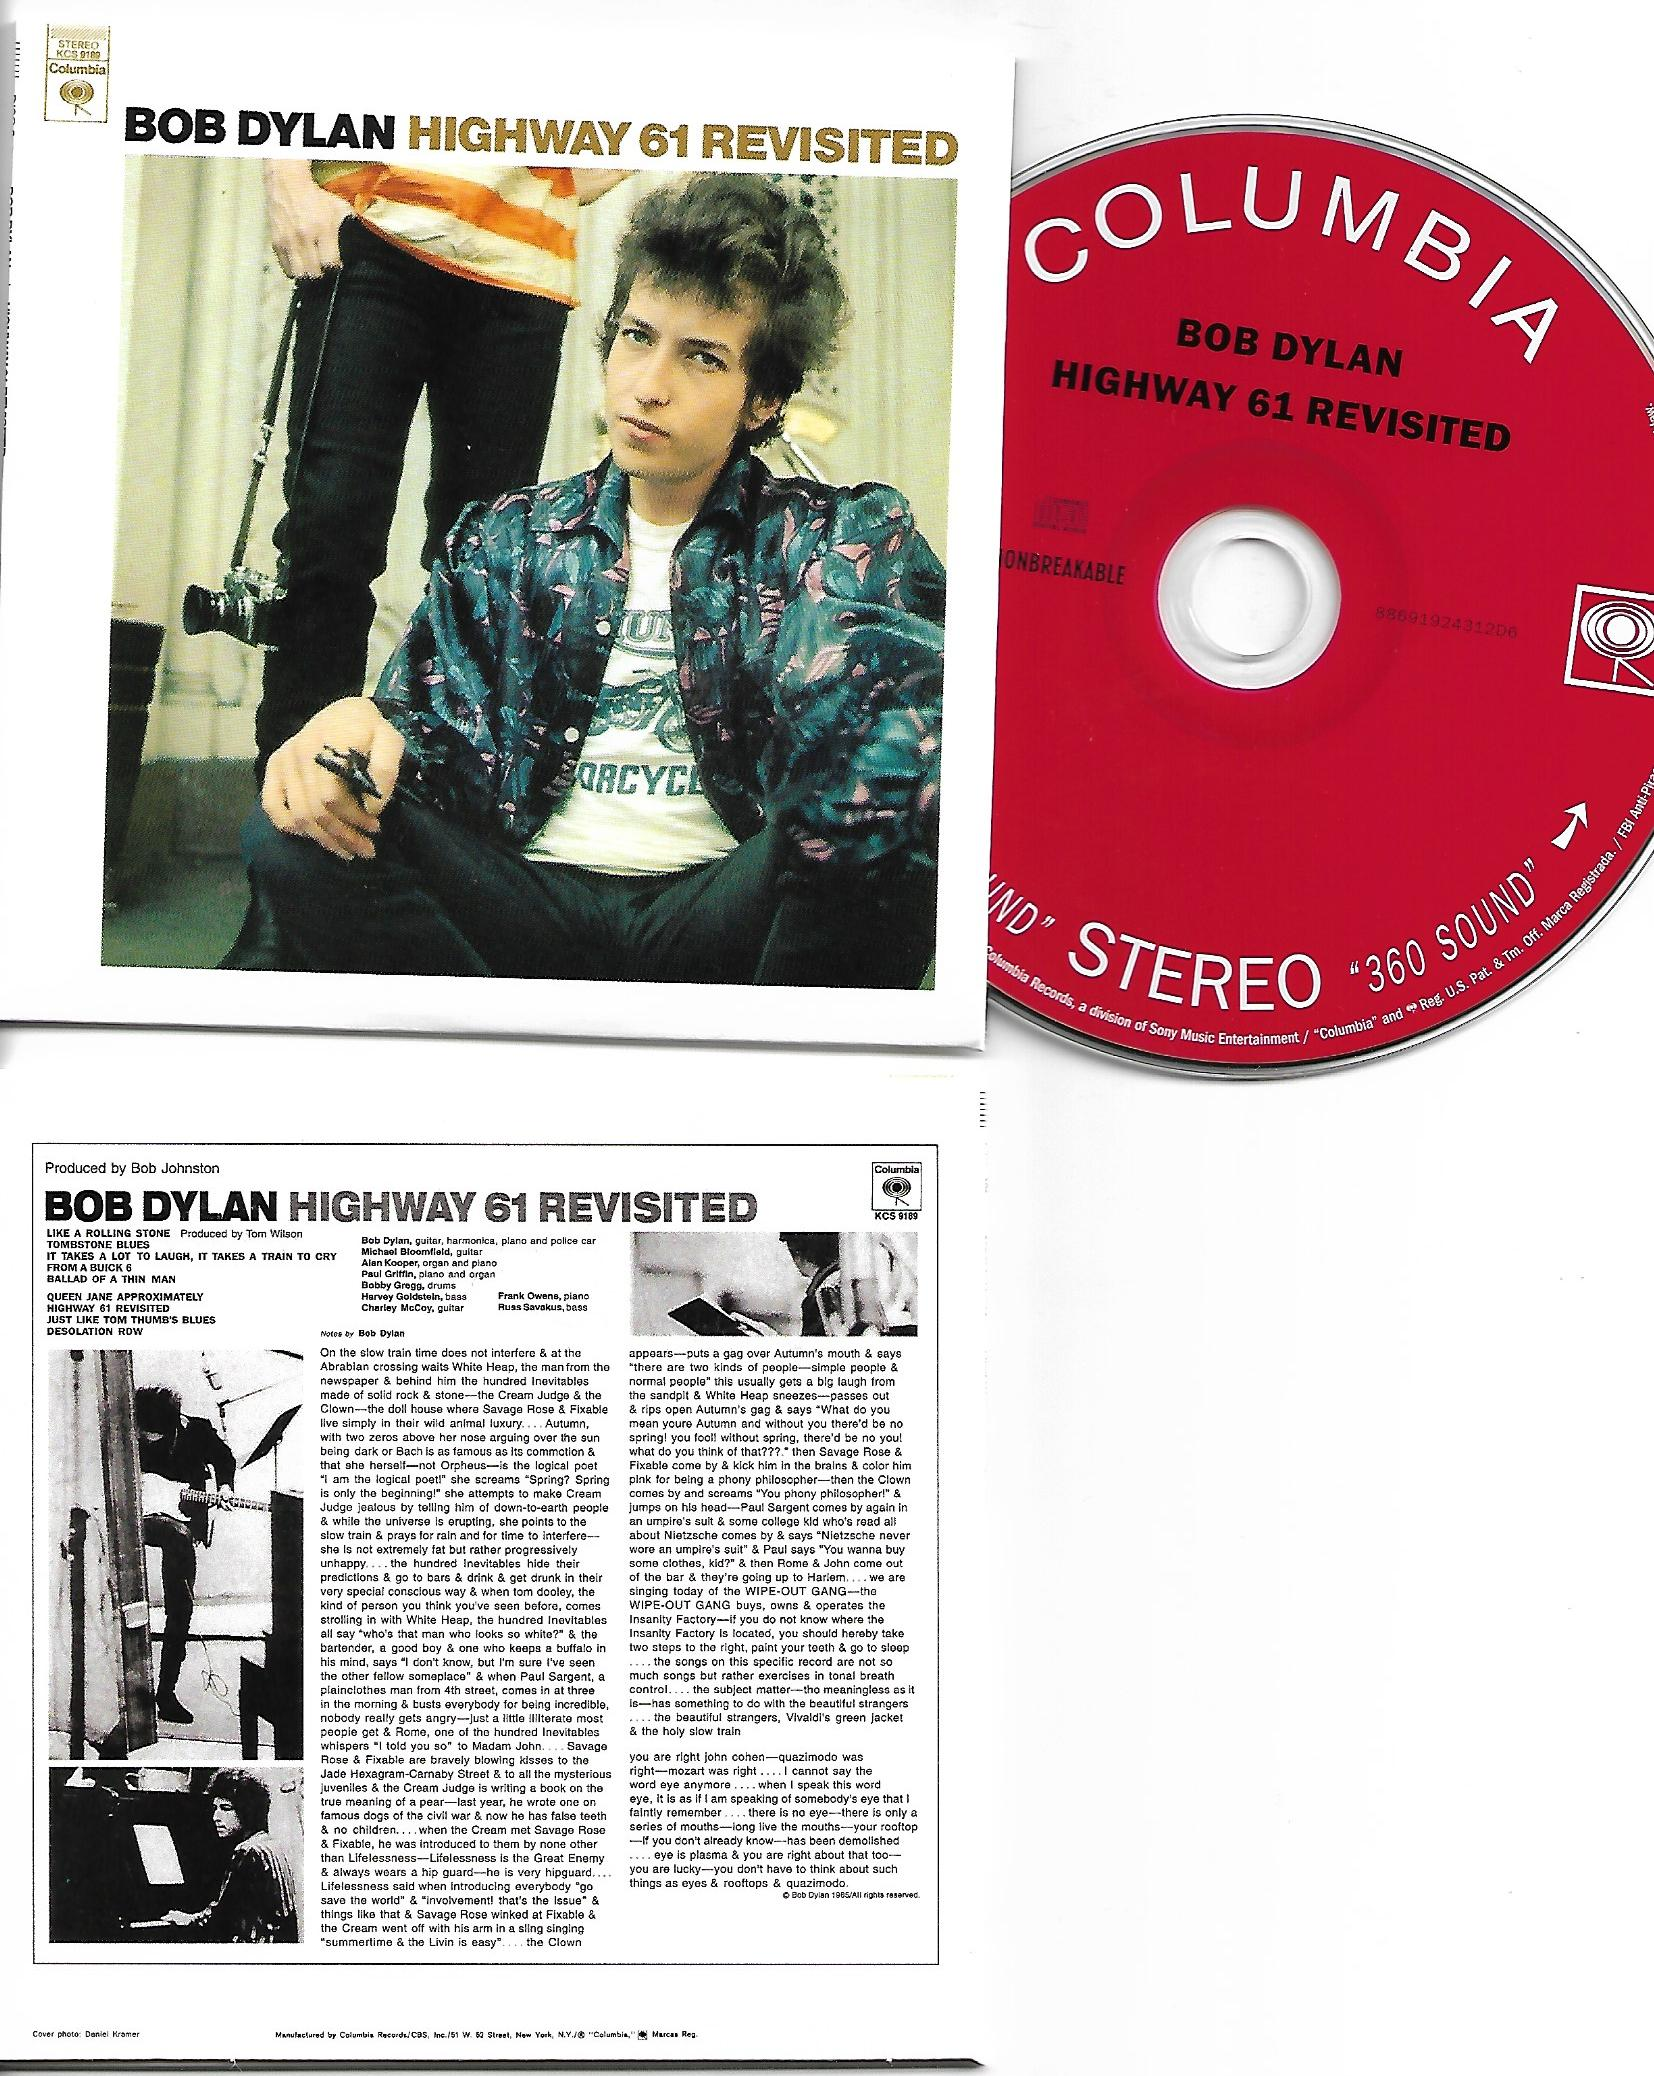 BOB DYLAN - Highway 61 Revisited 1965 - MINI LP REPLICA CARD BOARD SLEEVE - CD